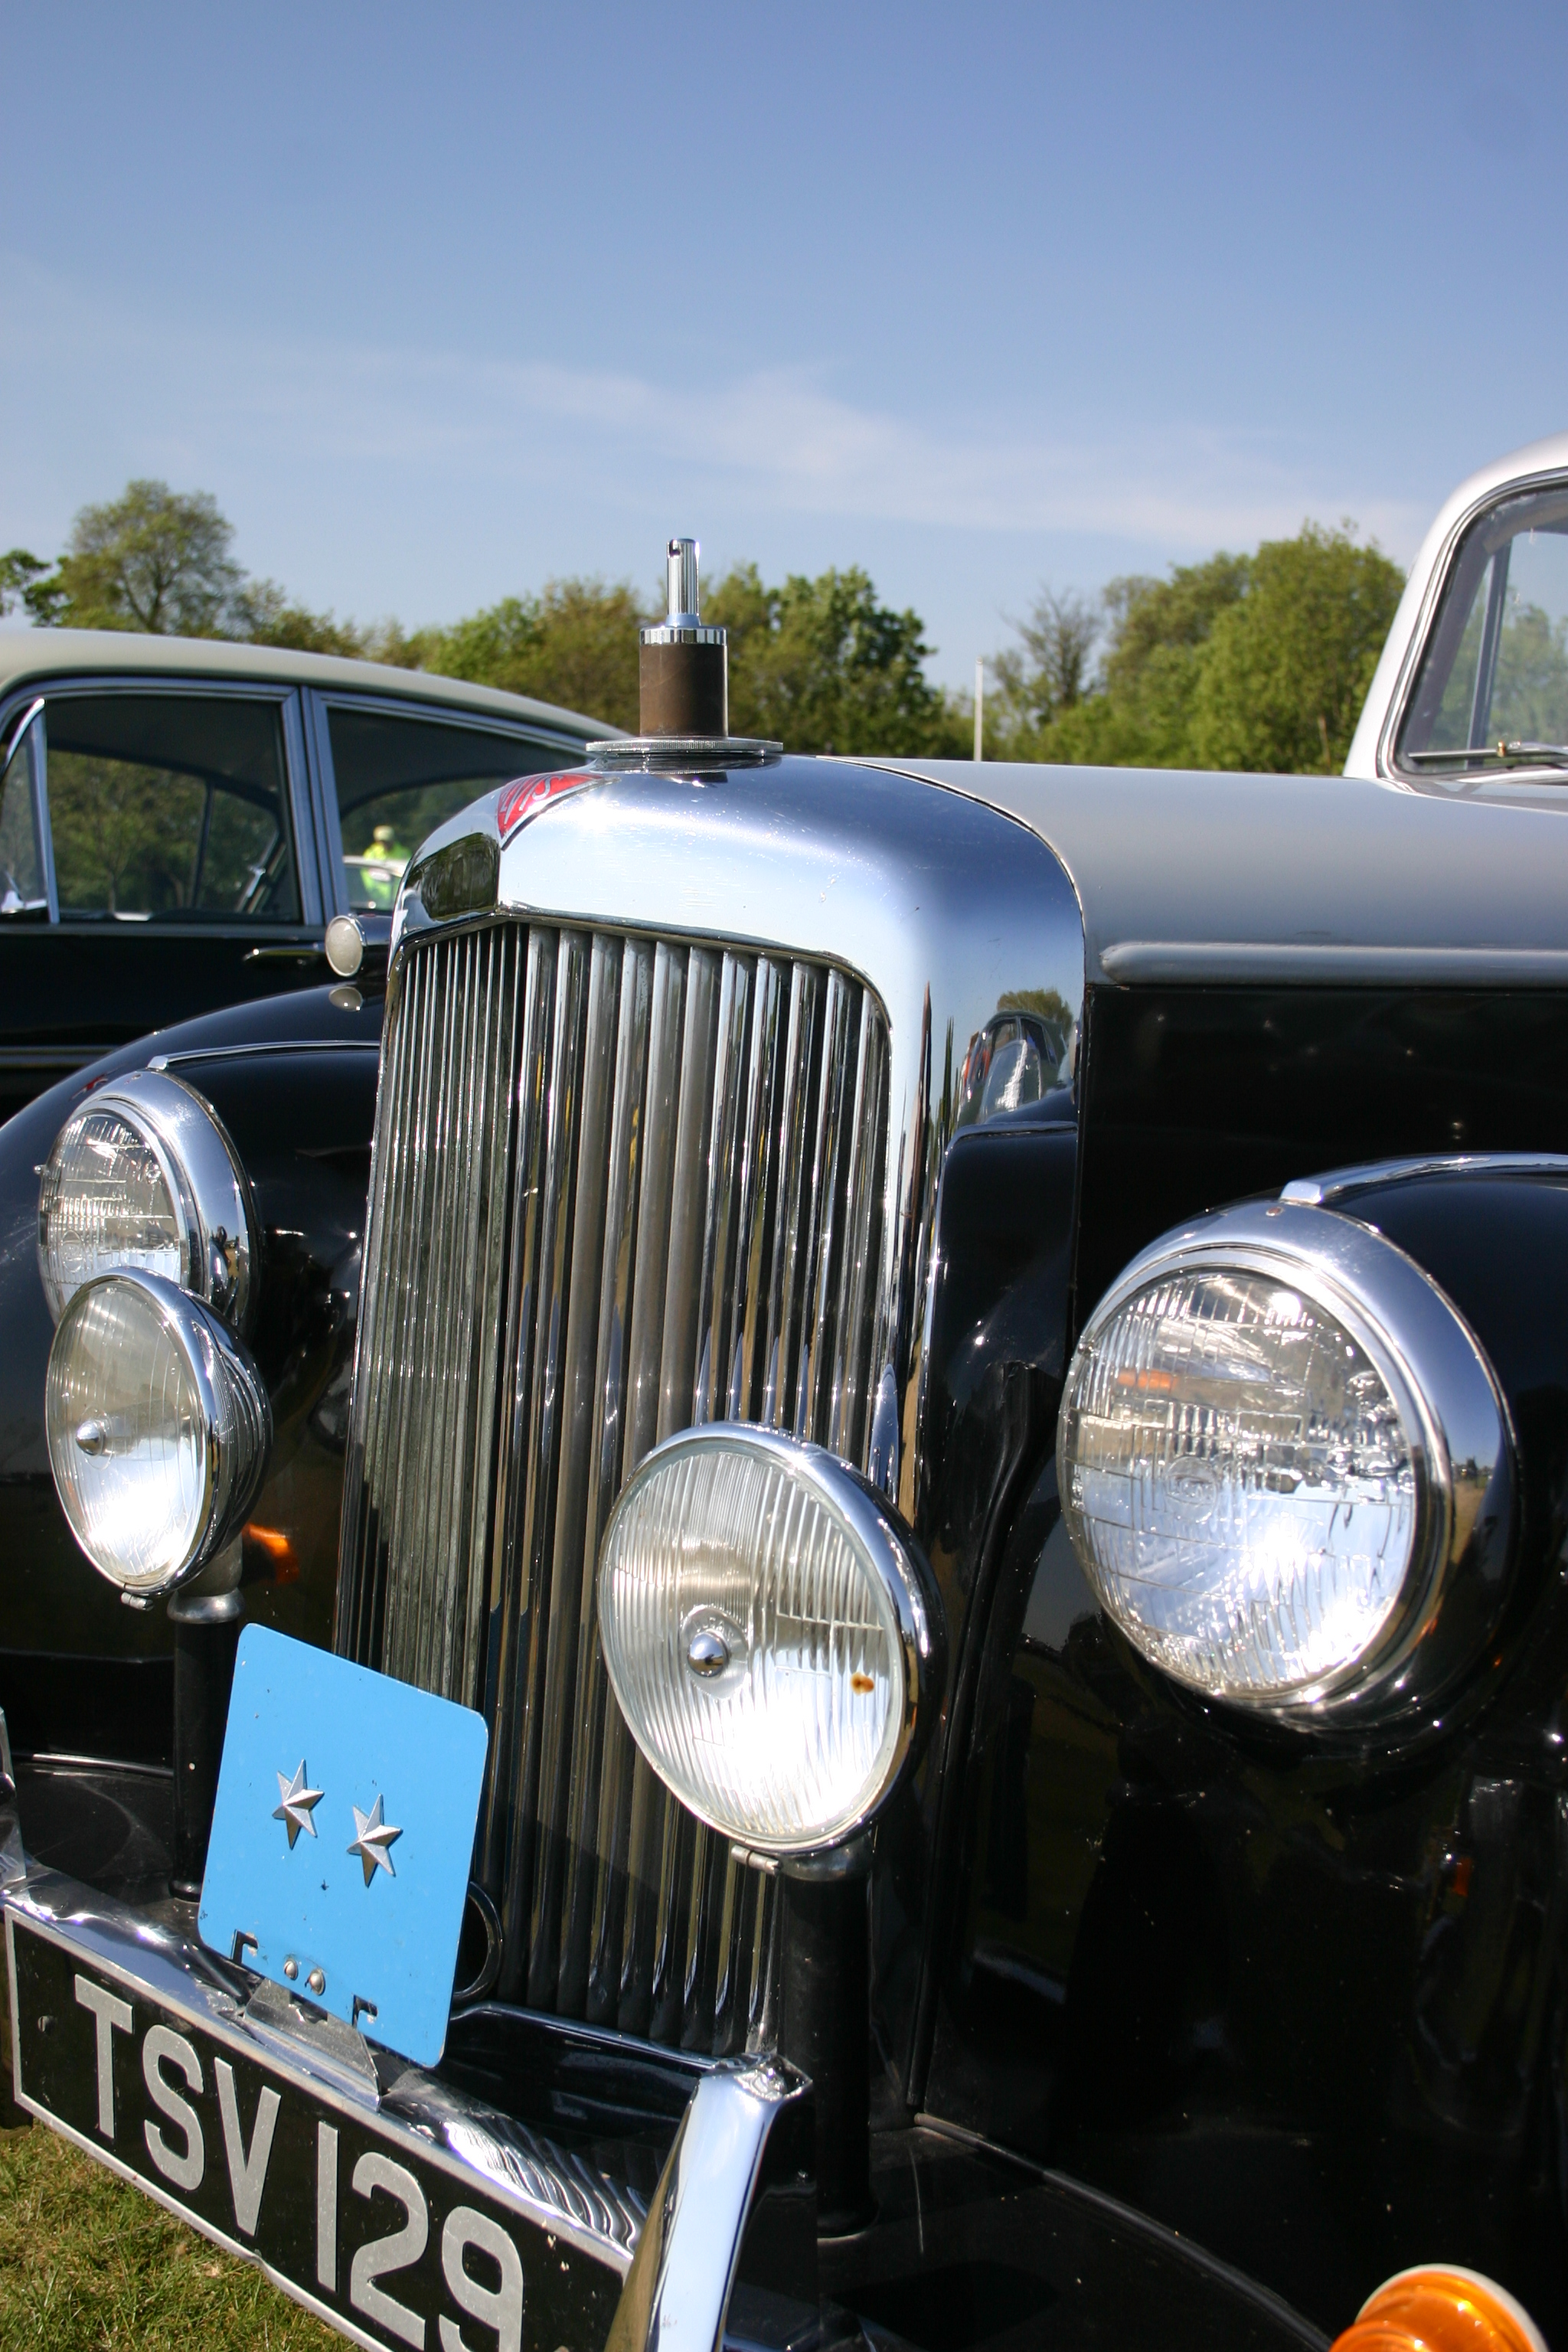 ALVIS DUXFORD SPRING CAR SHOW by Sceptre63